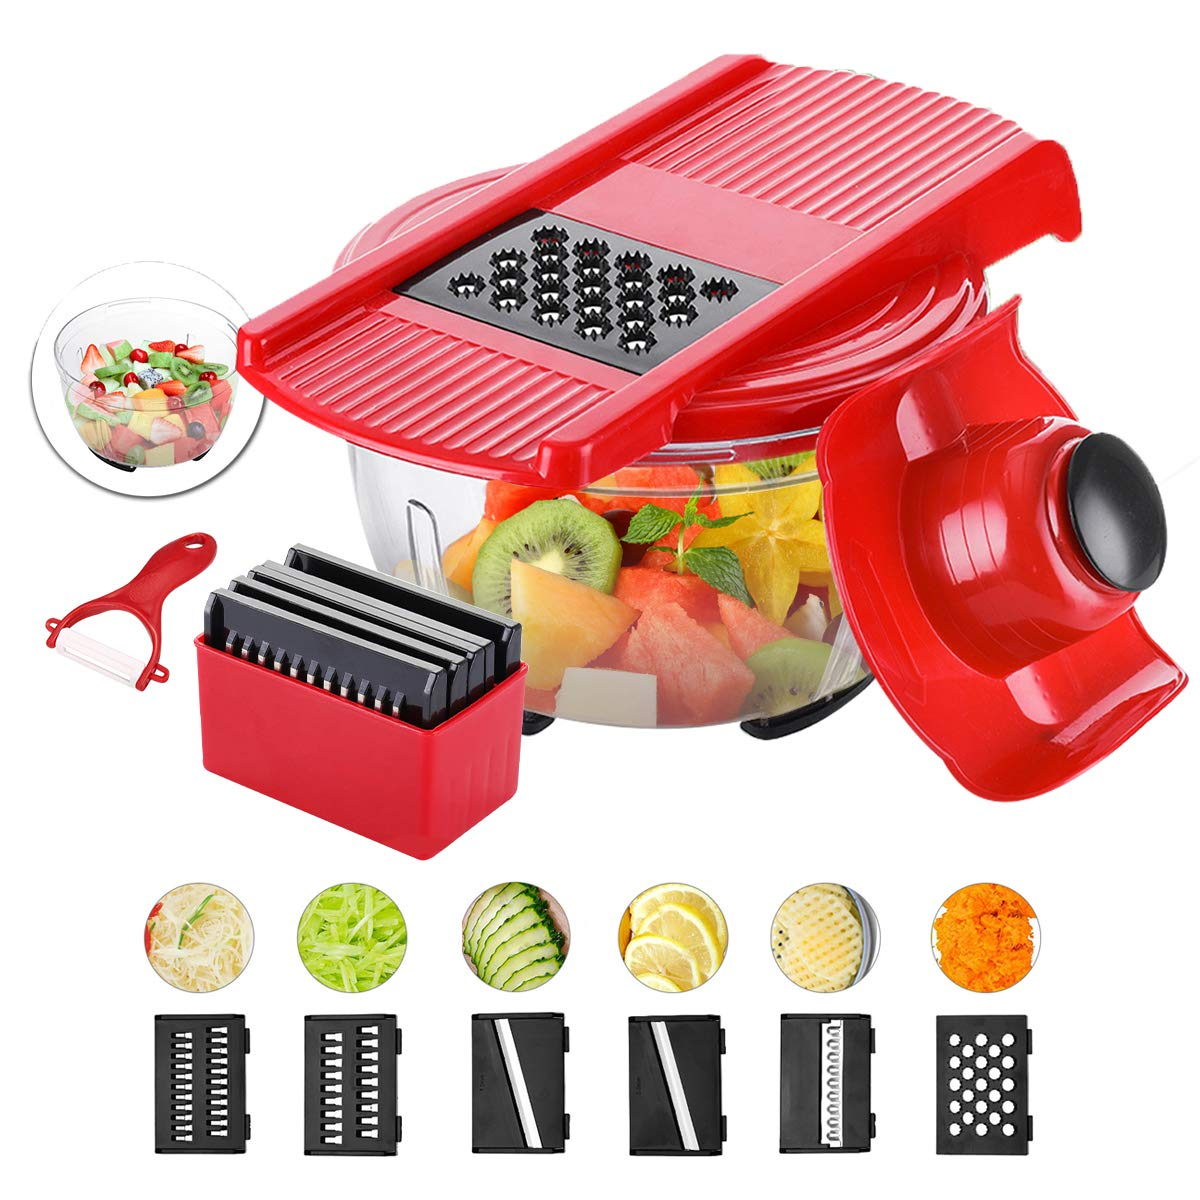 Godmorn Mandolin Slicer, Large Capacity Vegetable Slicer, Multi-function Food Cutter, Fruit Cutter and Grater with 6 Interchangeable Stainless Steel Blades + Food Catching Container( Round Design ) + Peeler Godmorn UK